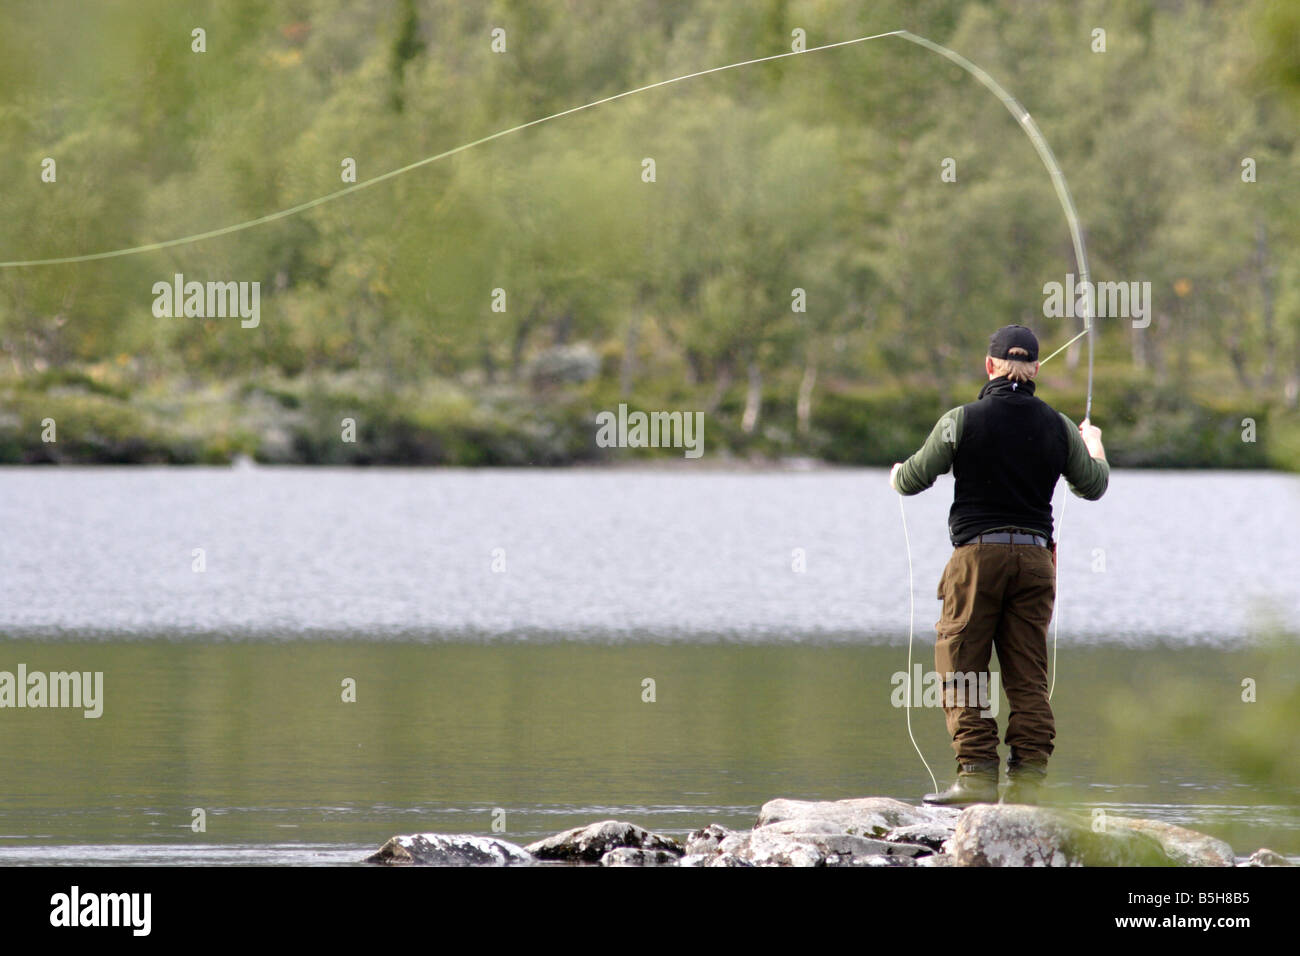 Fly fishing in Sweden. This was taken at Grövelsjön in Dalarna. - Stock Image